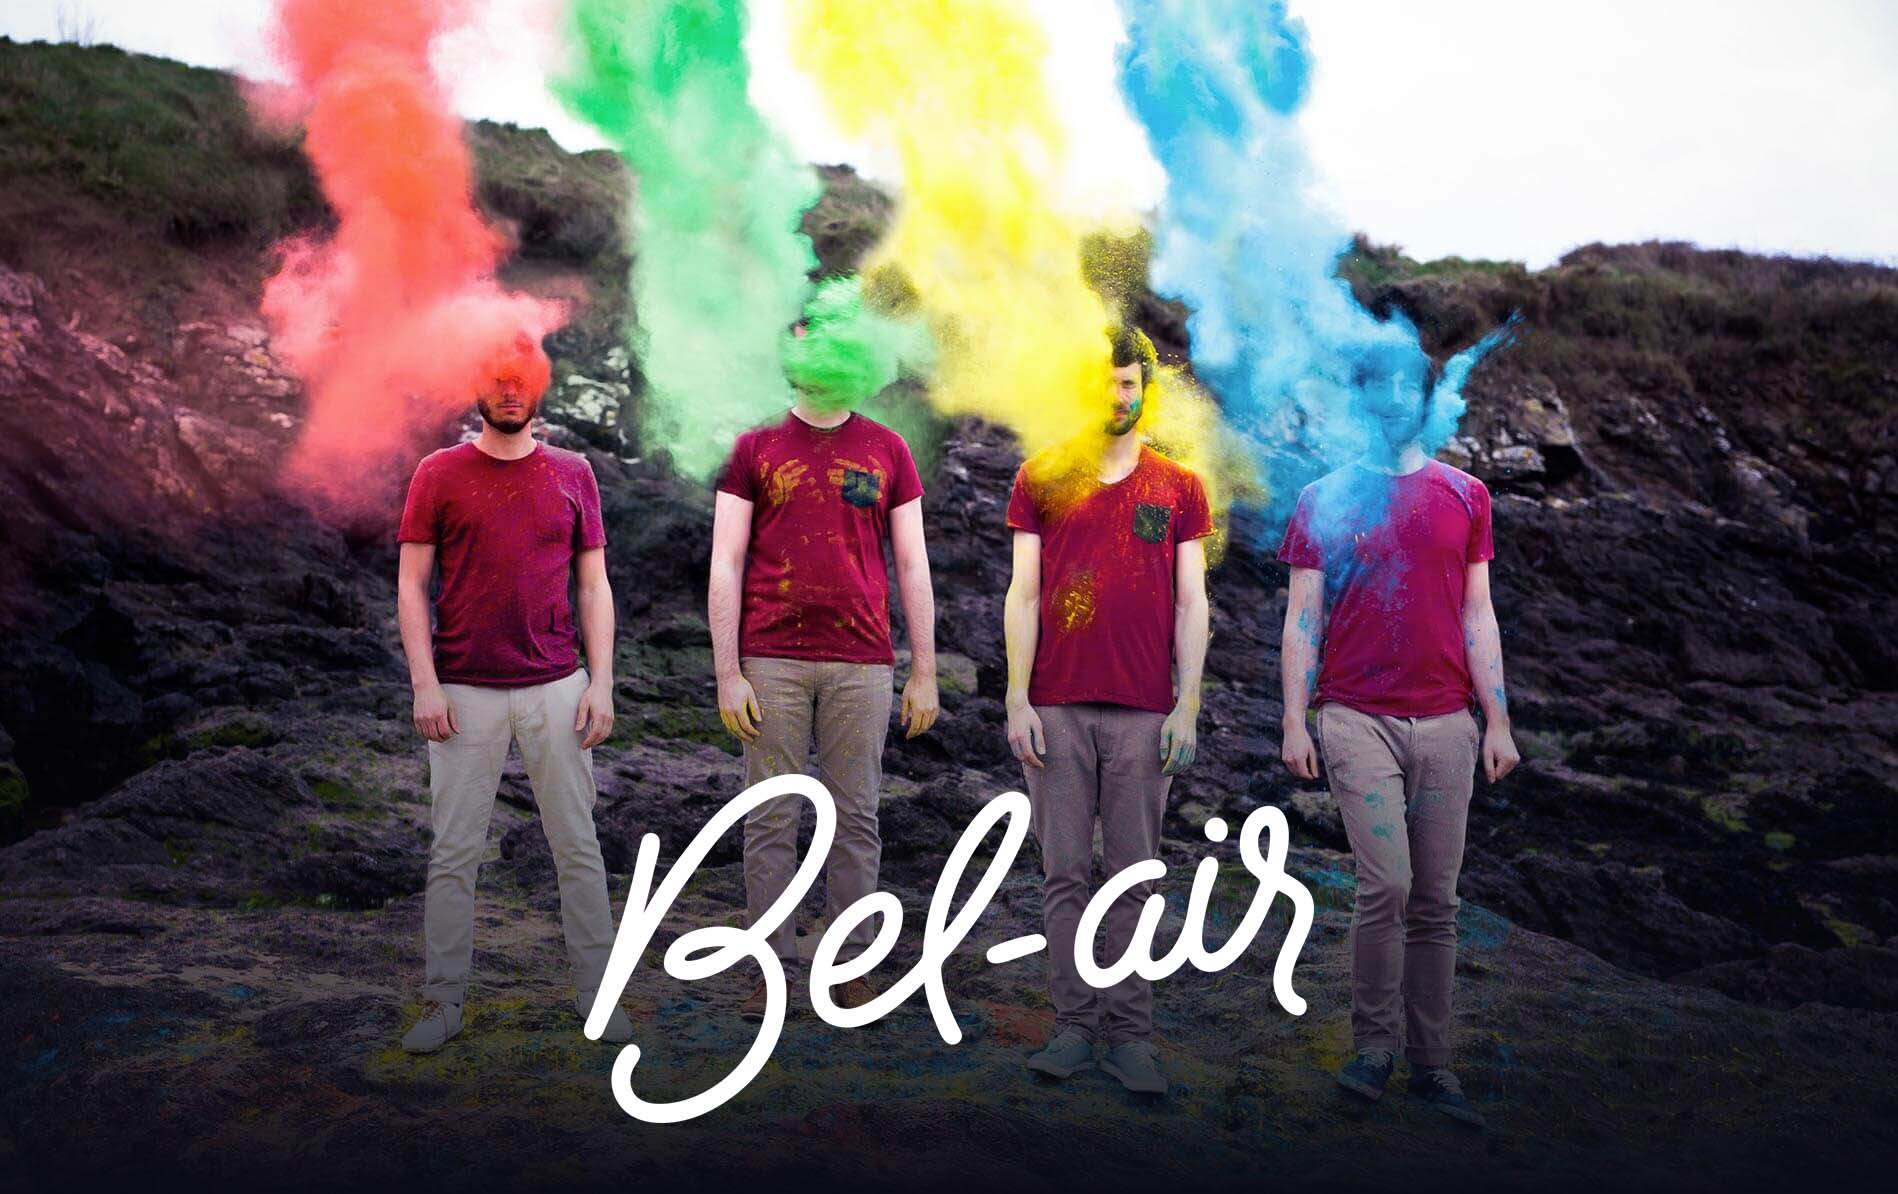 Bel-Air groupe